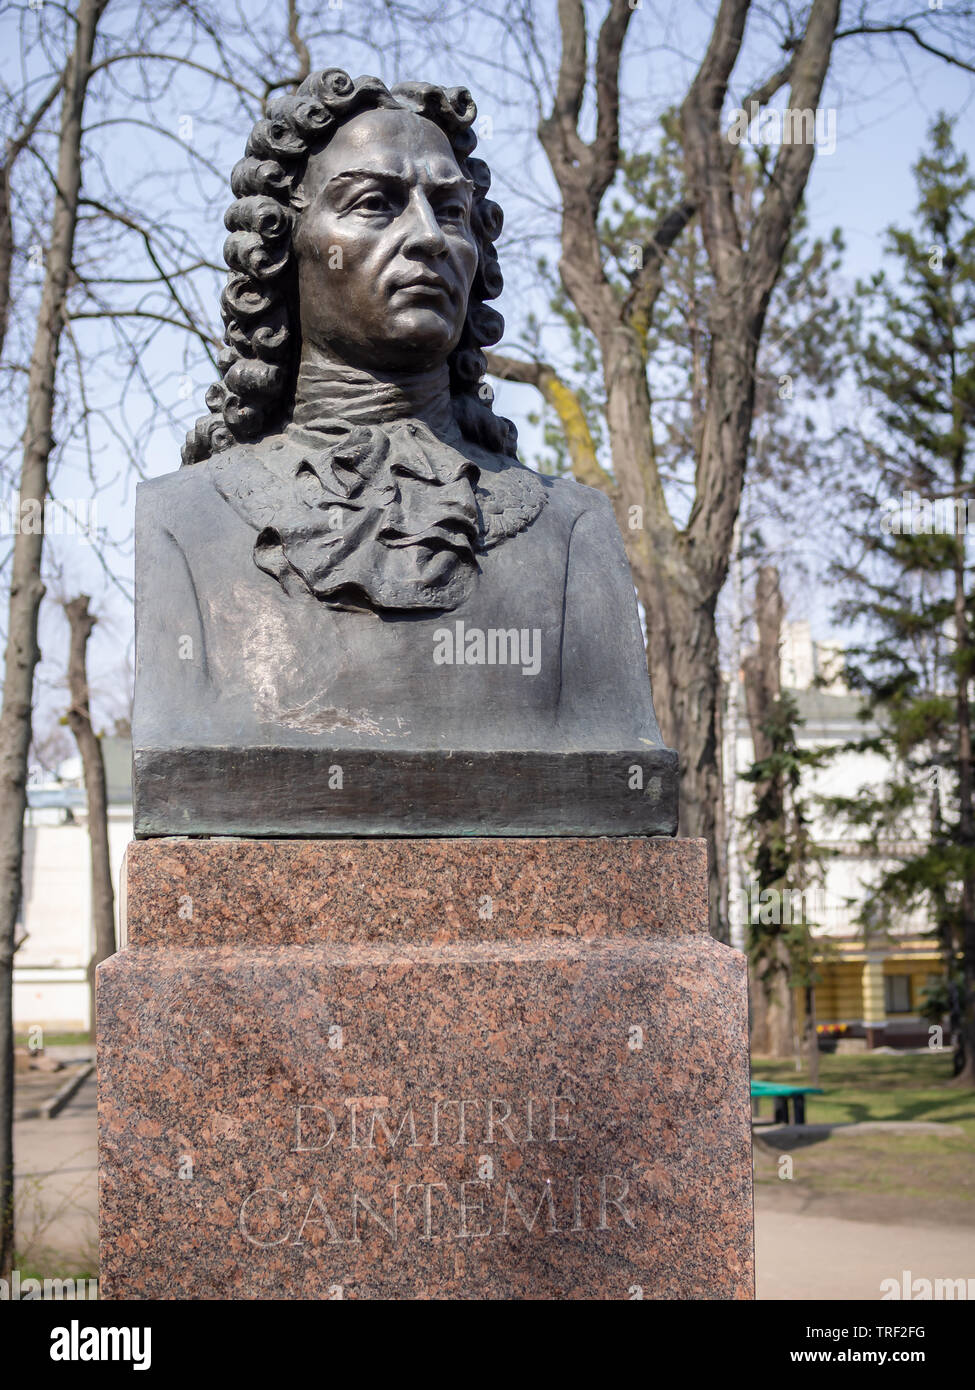 CHISINAU, MOLDOVA-MARCH 21, 2019:  Dimitrie Cantemir bust by Nikolay Gorenashev in the Alley of Classics - Stock Image